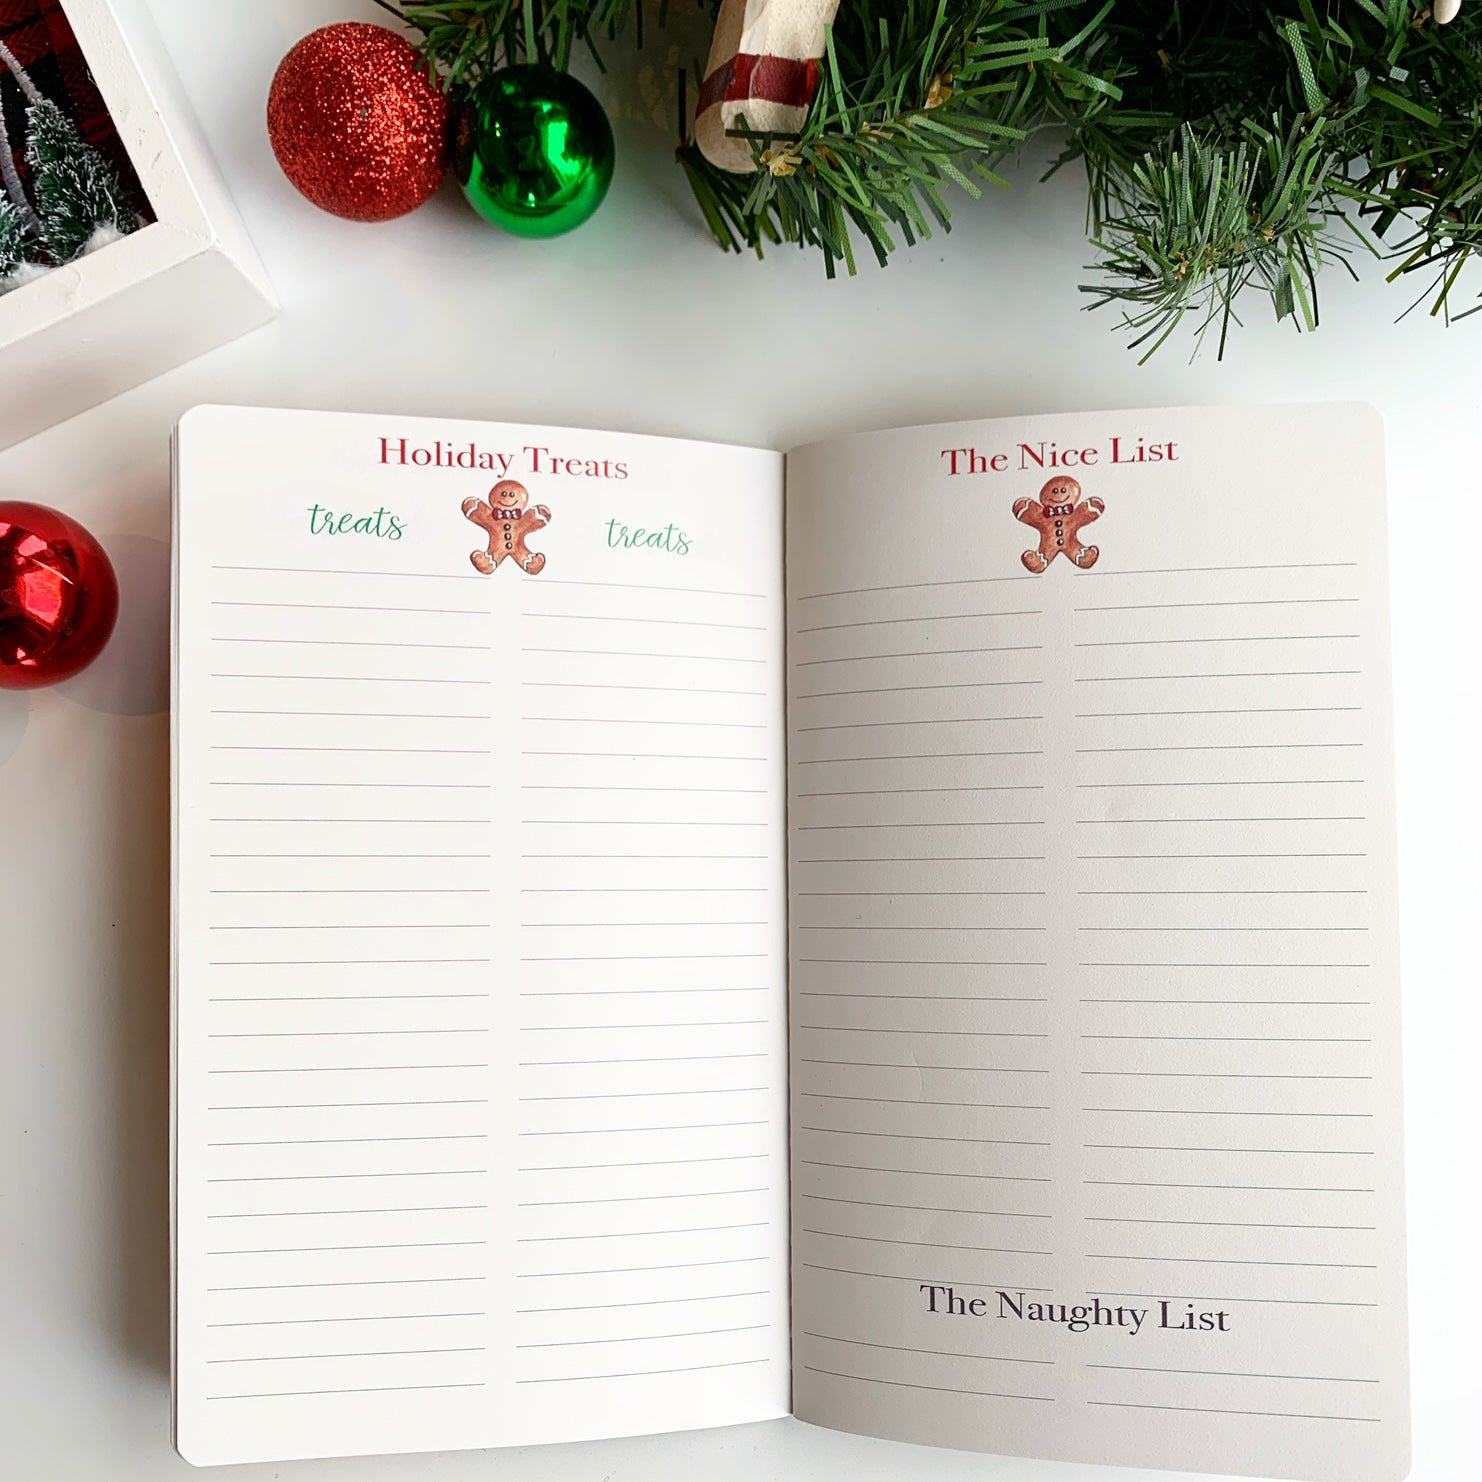 Christmas Planner Holiday Treats & Nice List Pages